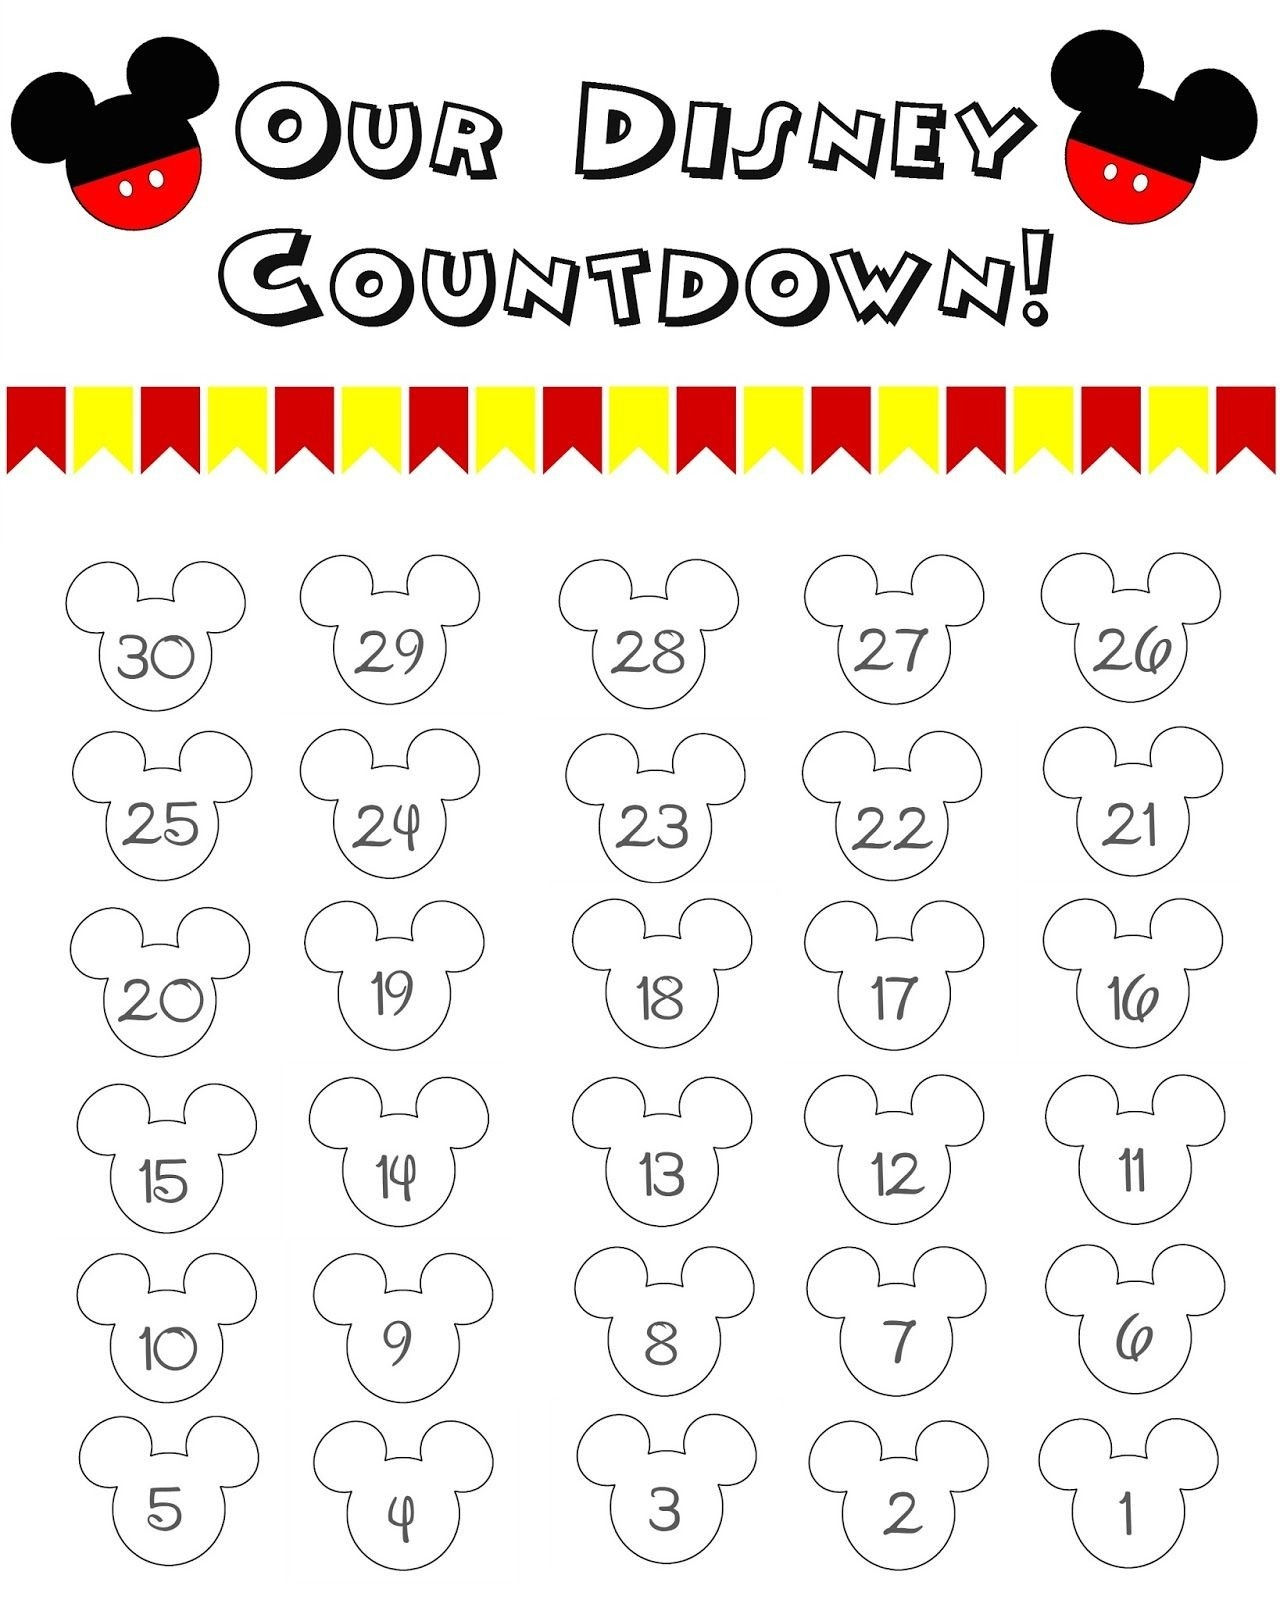 Disney World Countdown Calendar - Free Printable | The Momma-Blank Countdown Calendar 50 Days